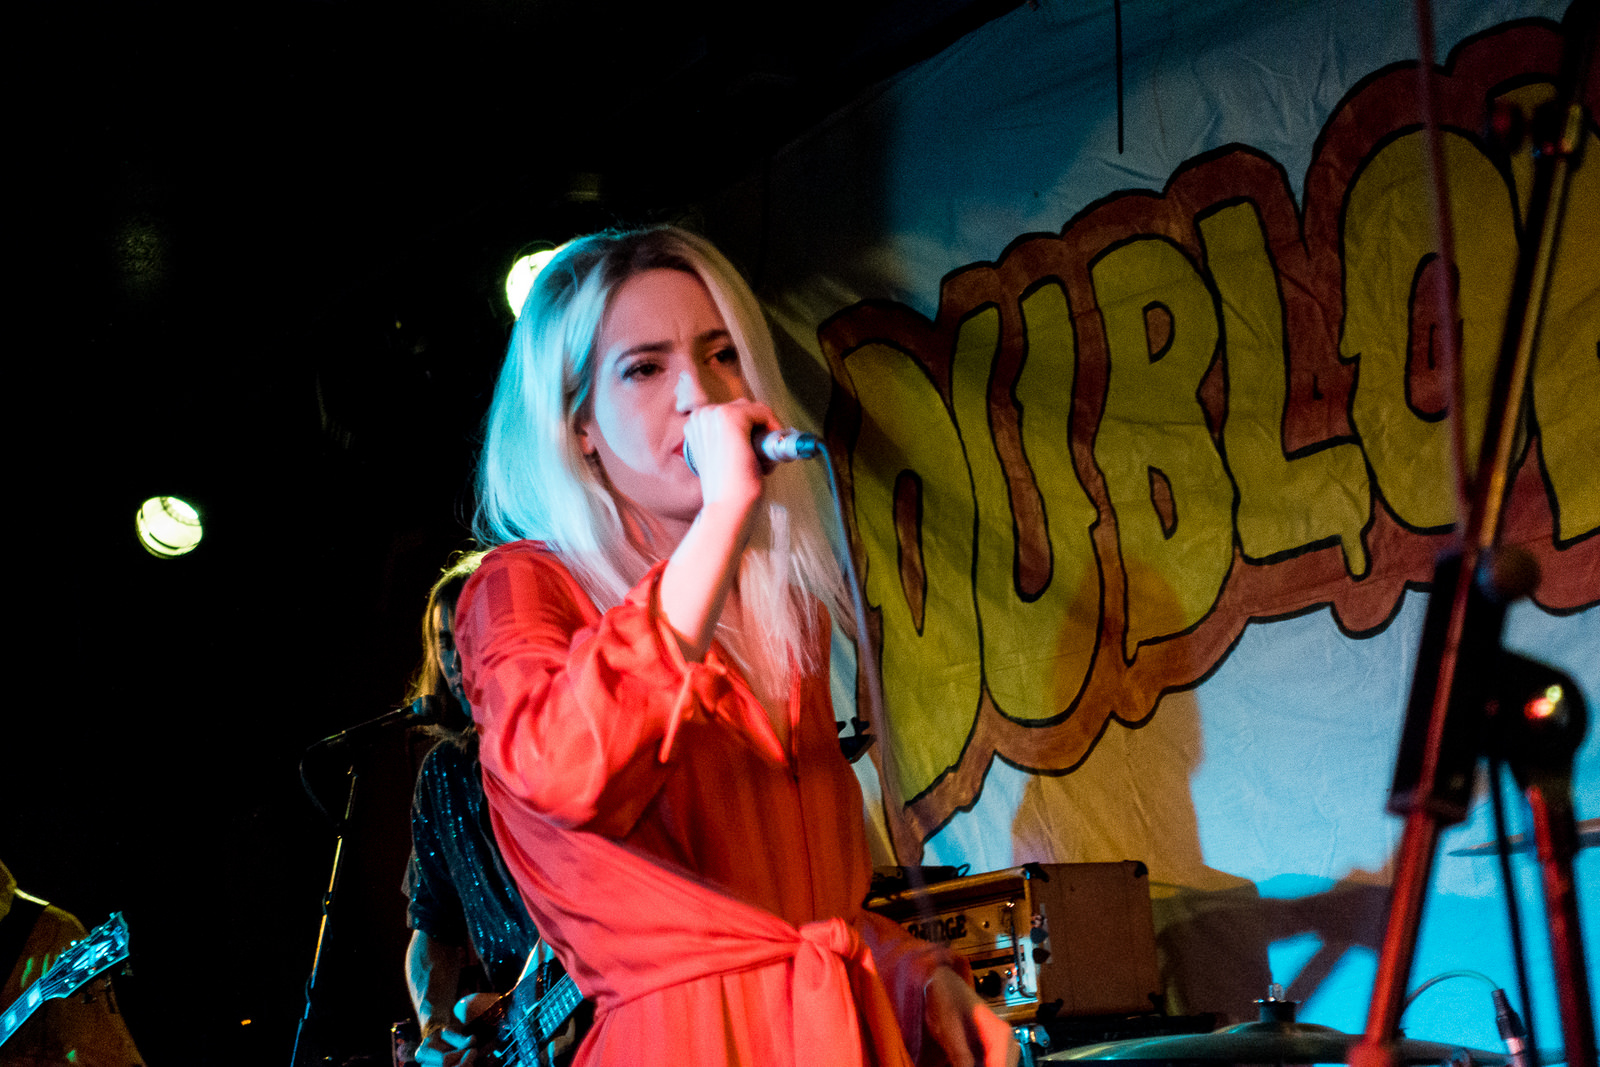 Du Blonde at the 100 Club